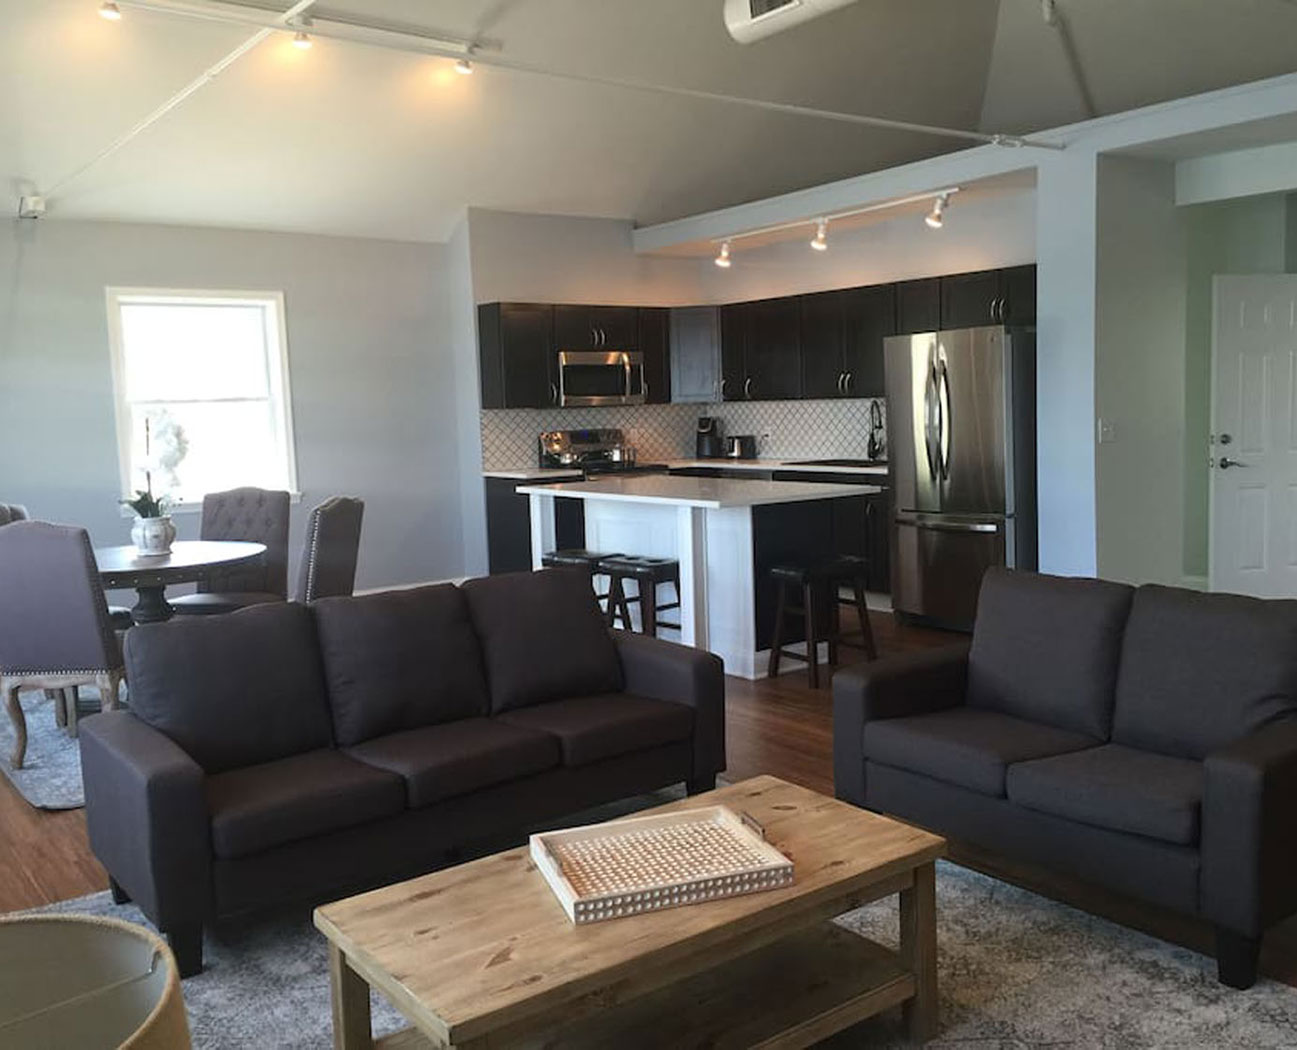 Apartment Rentals near Annapolis